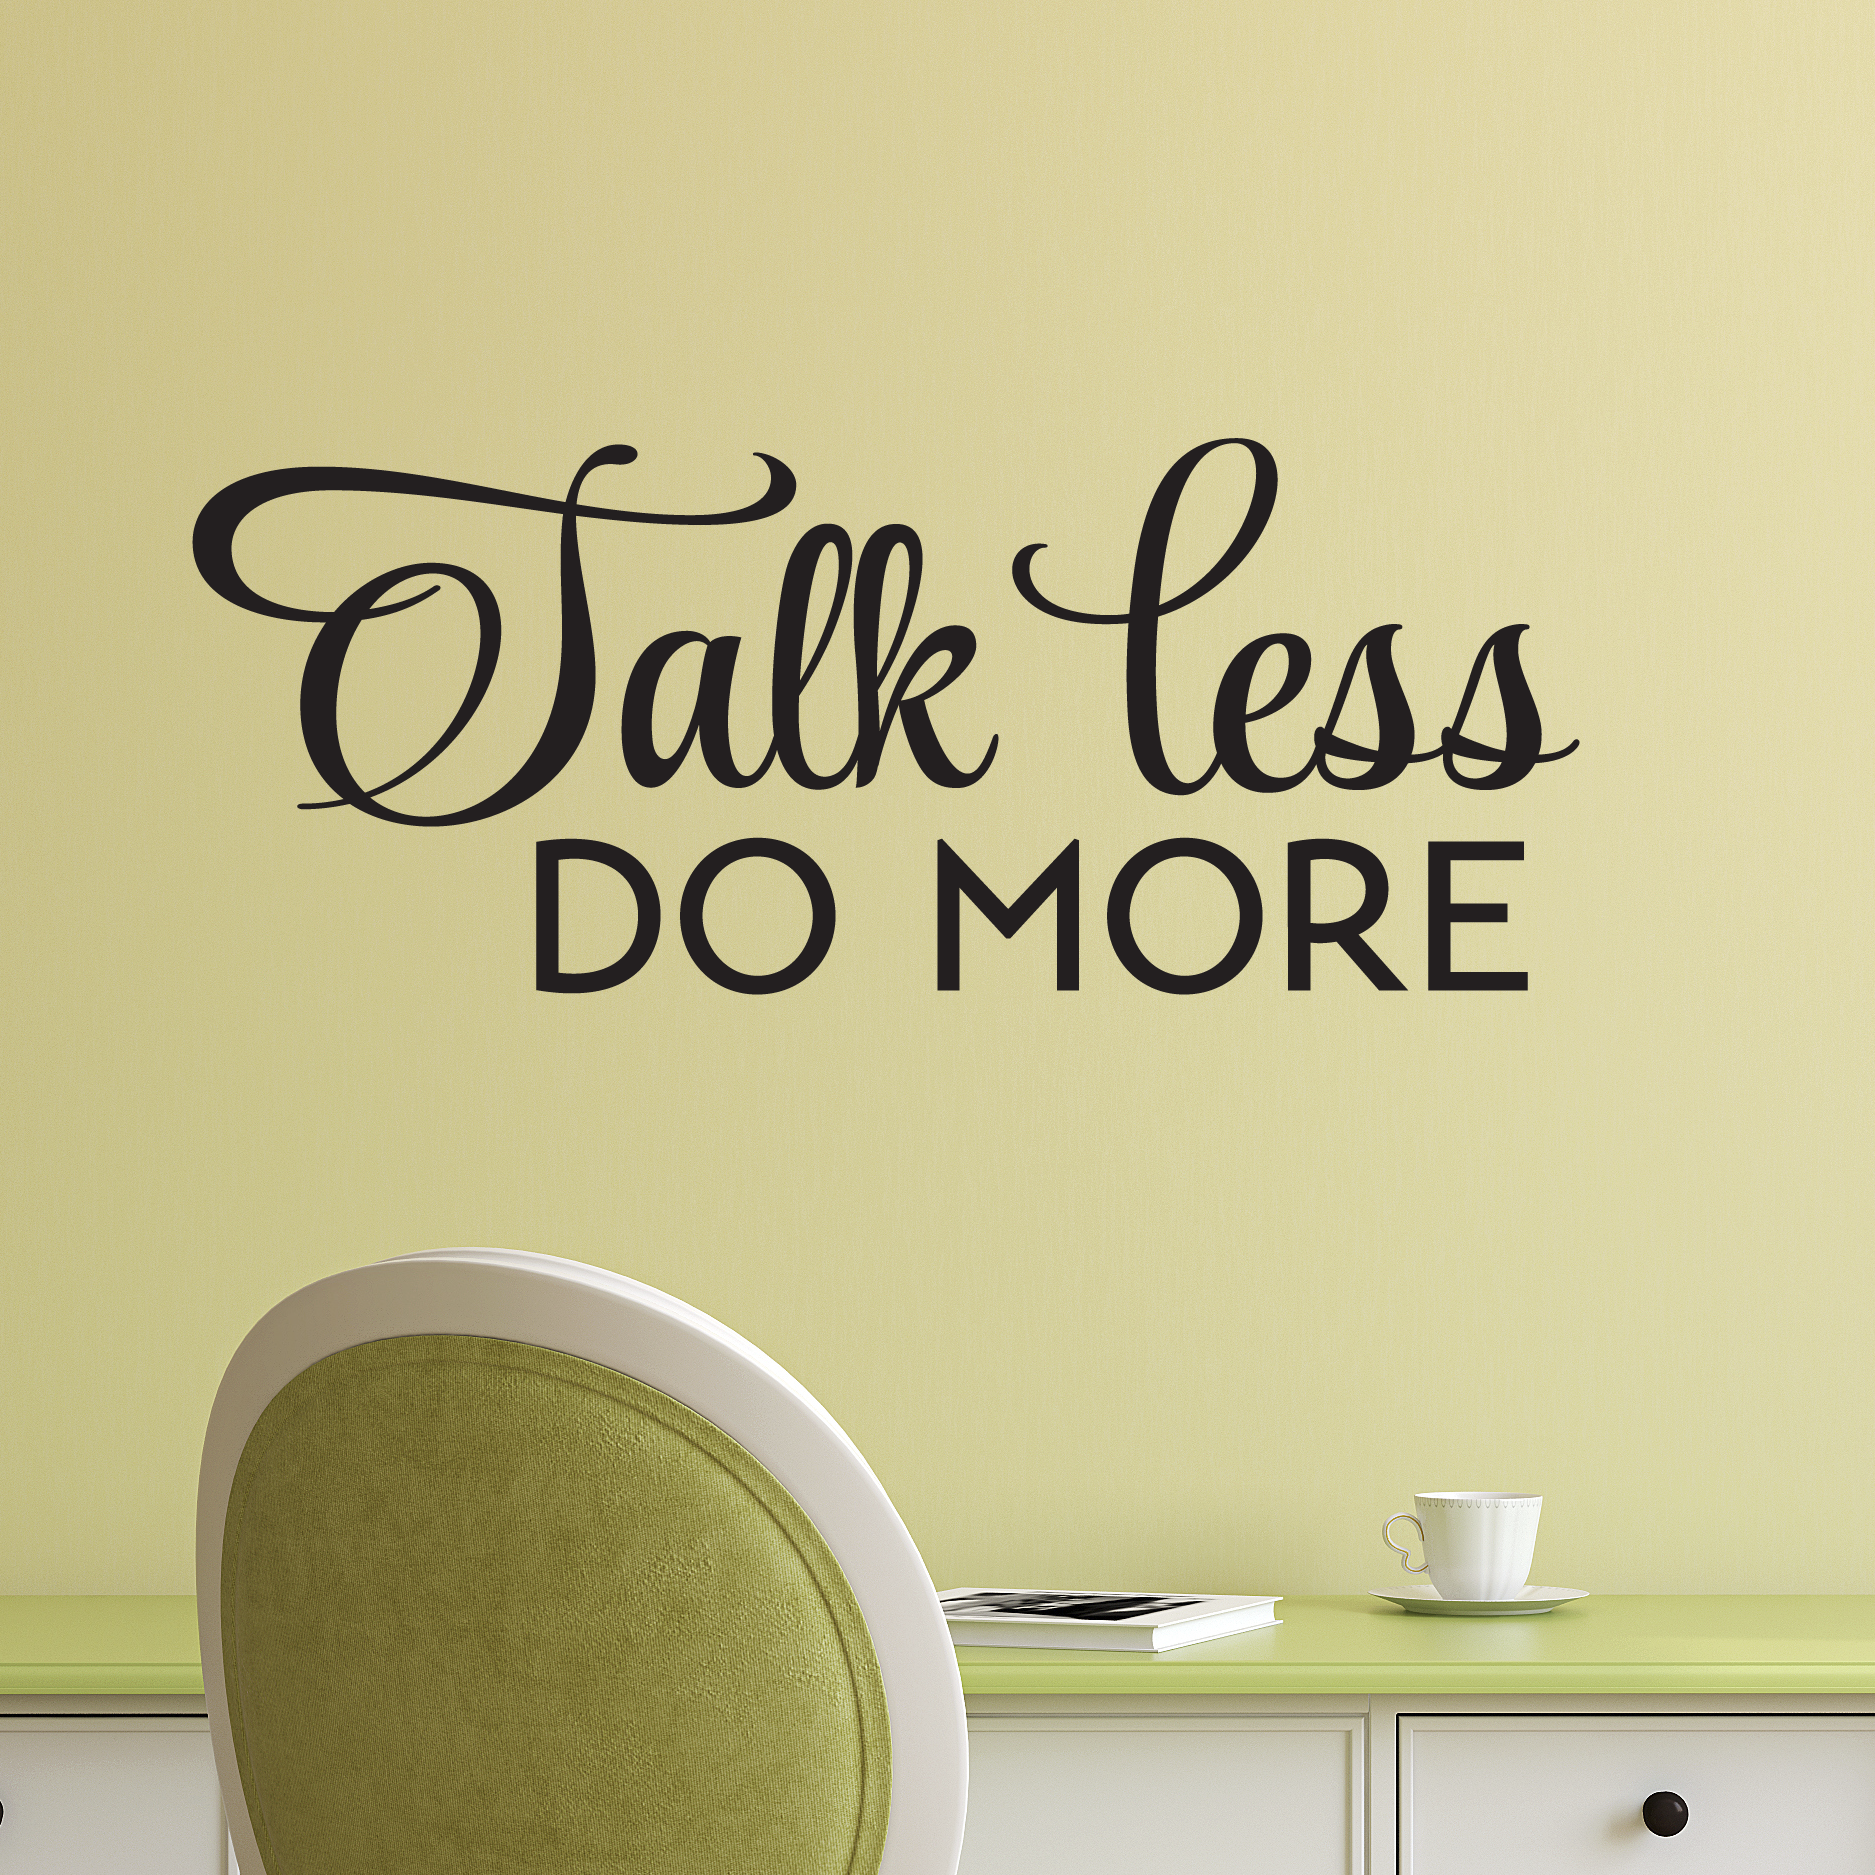 Talk Less Do More Wall Quotes™ Decal | WallQuotes.com